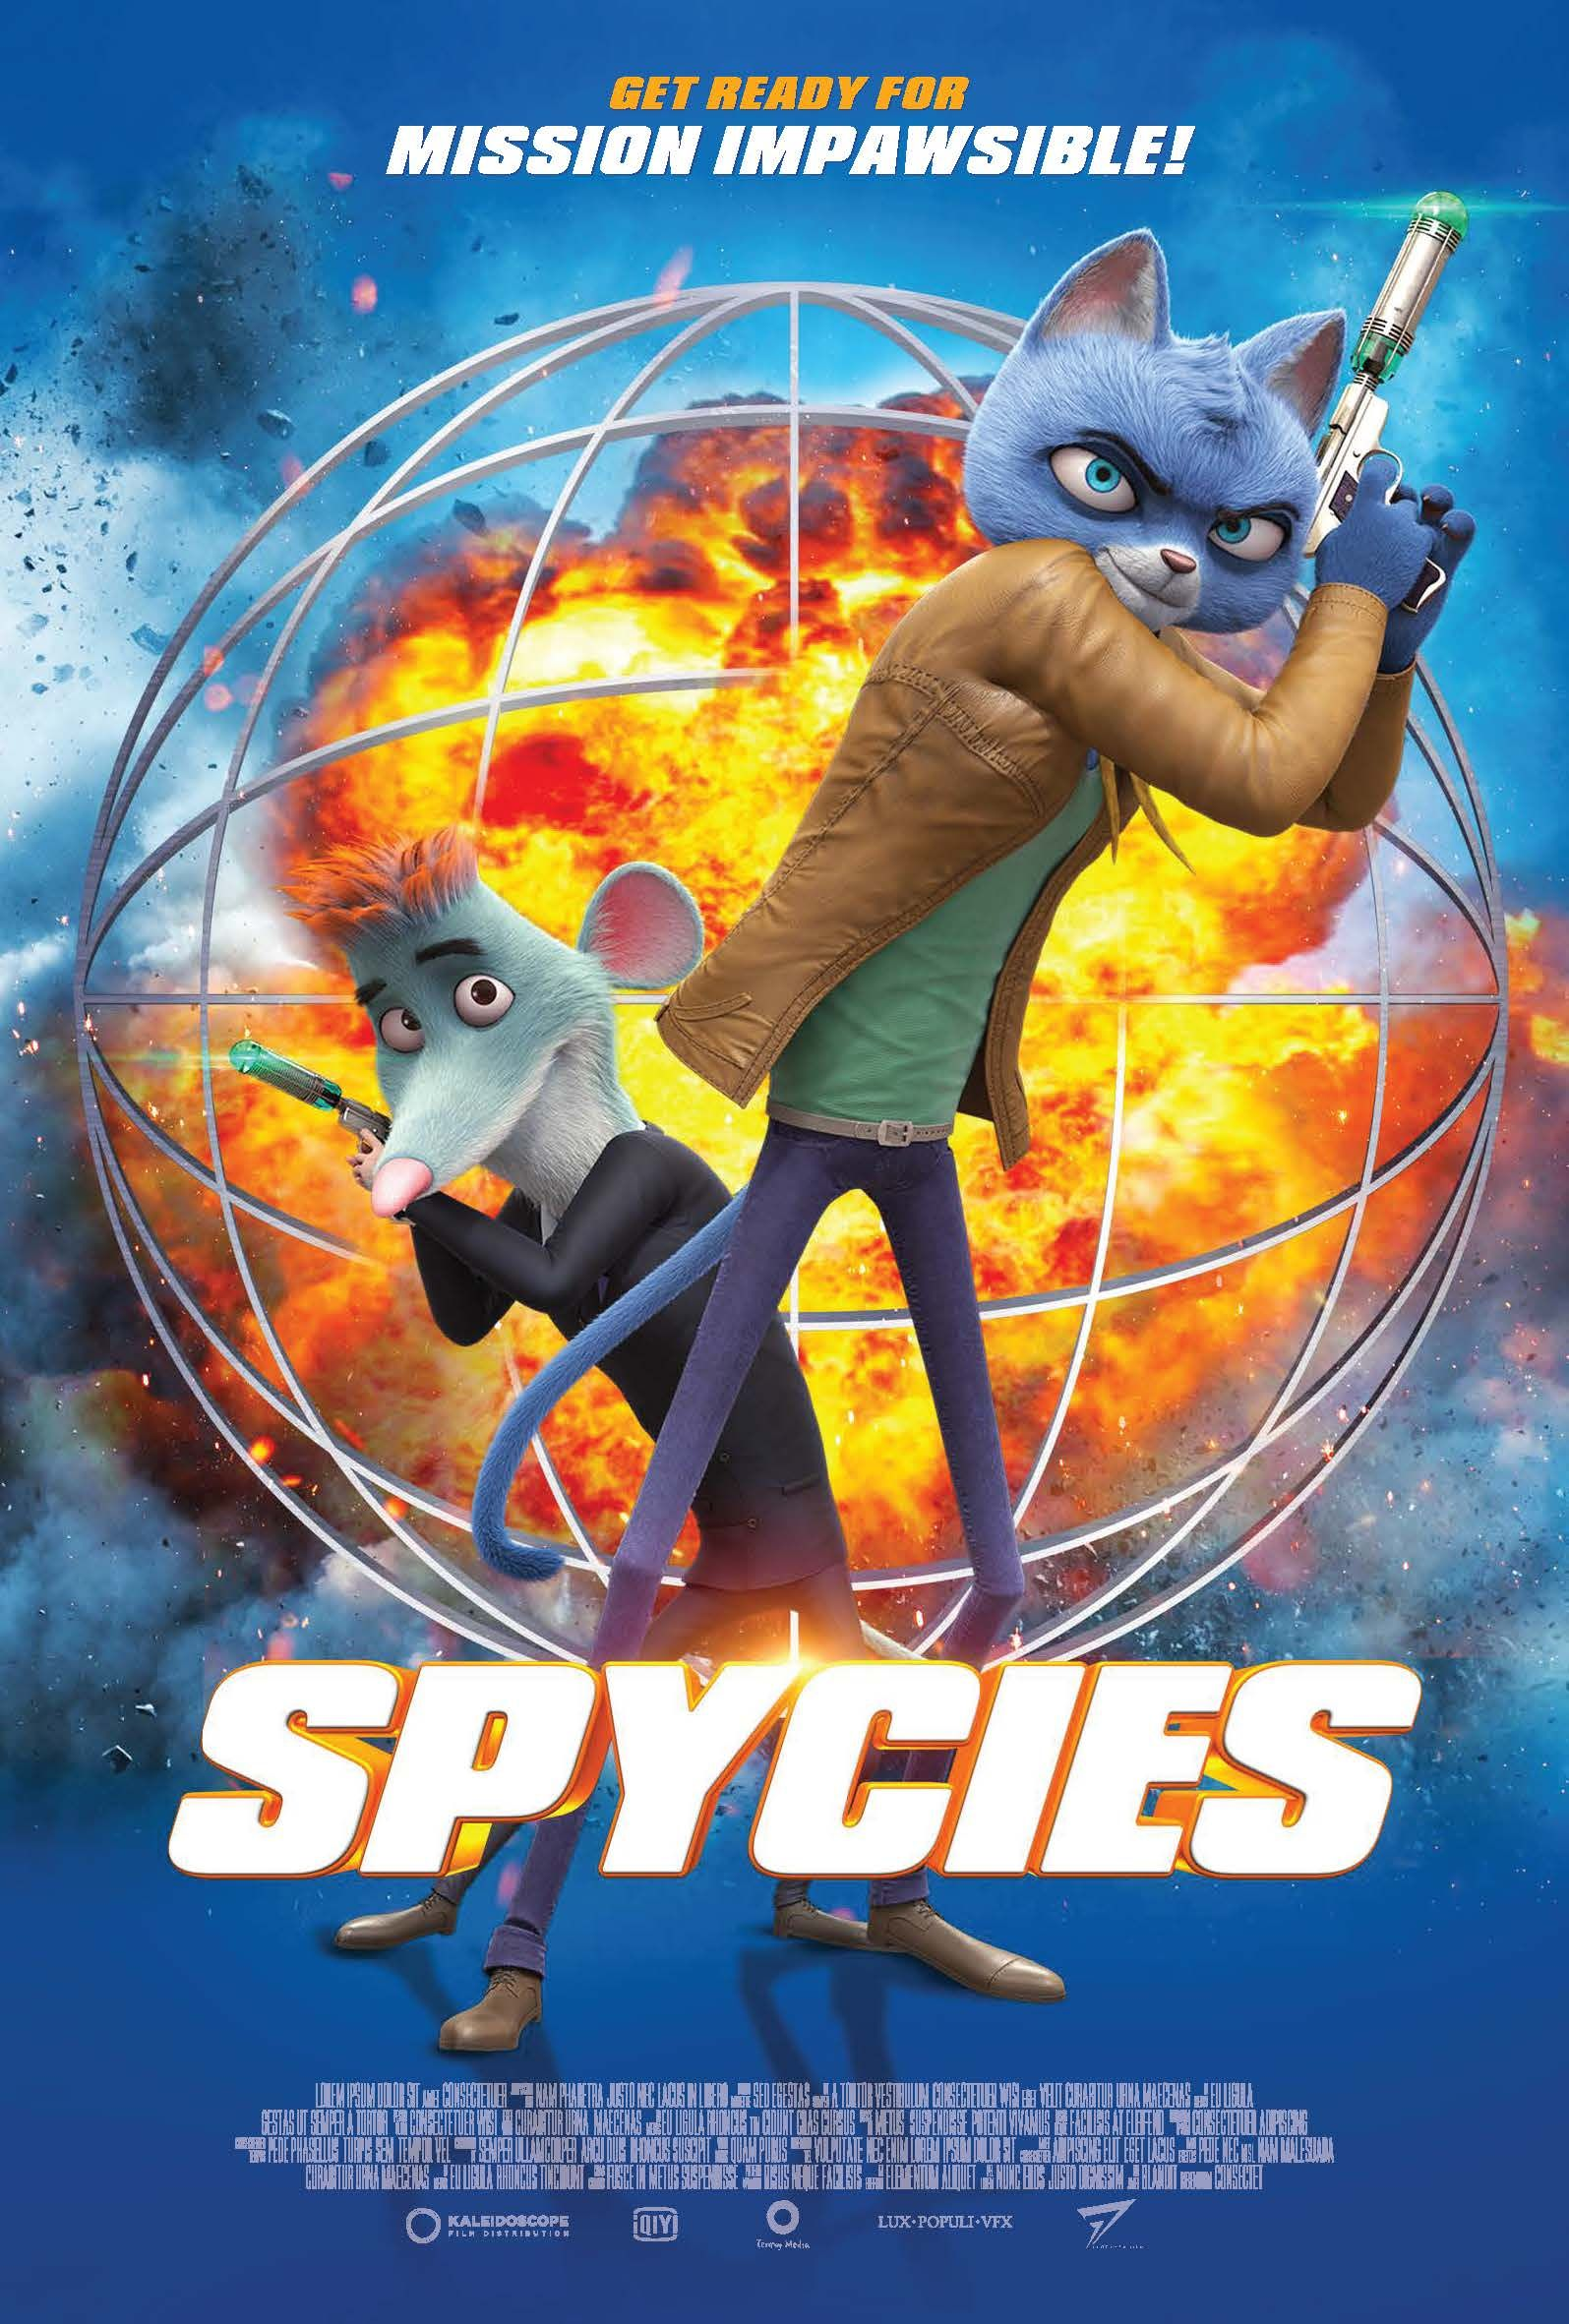 Spycies 2020 Action Adventure Animation Comedy Family In 2020 Movies Online Full Movies Free Movies Online